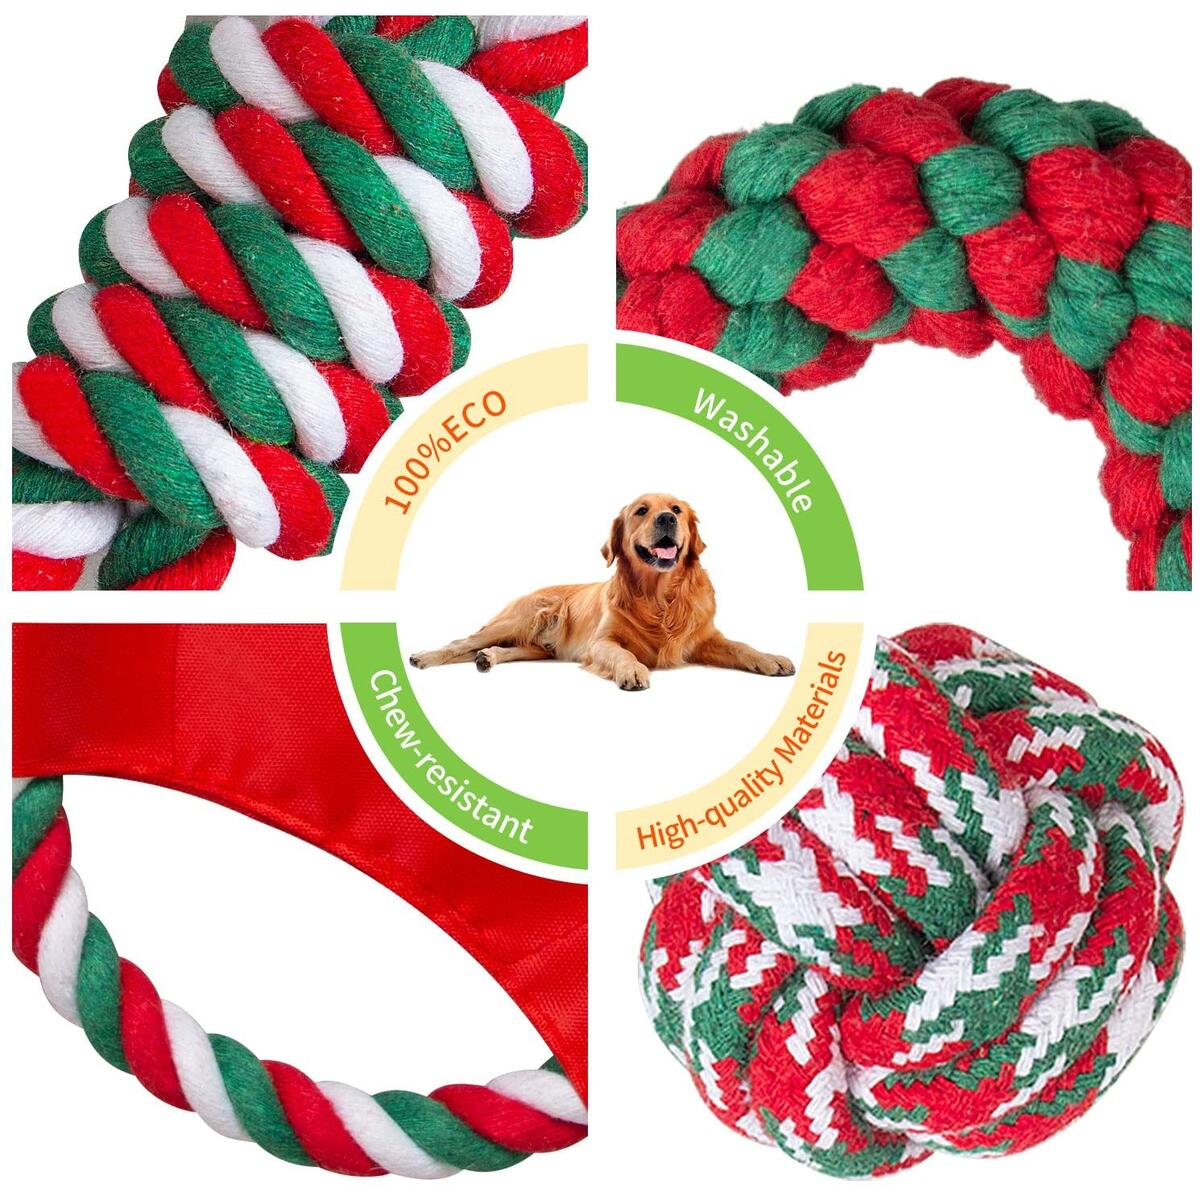 Puppy Teething Chew Toys, 5 Packs Cotton Indestructible Rope Dog Toy, Dog Chew Toys for Aggressive Chewers Large Breed Christmas Dog Stocking Stuffers Rope Toys for Small Medium Large Dogs